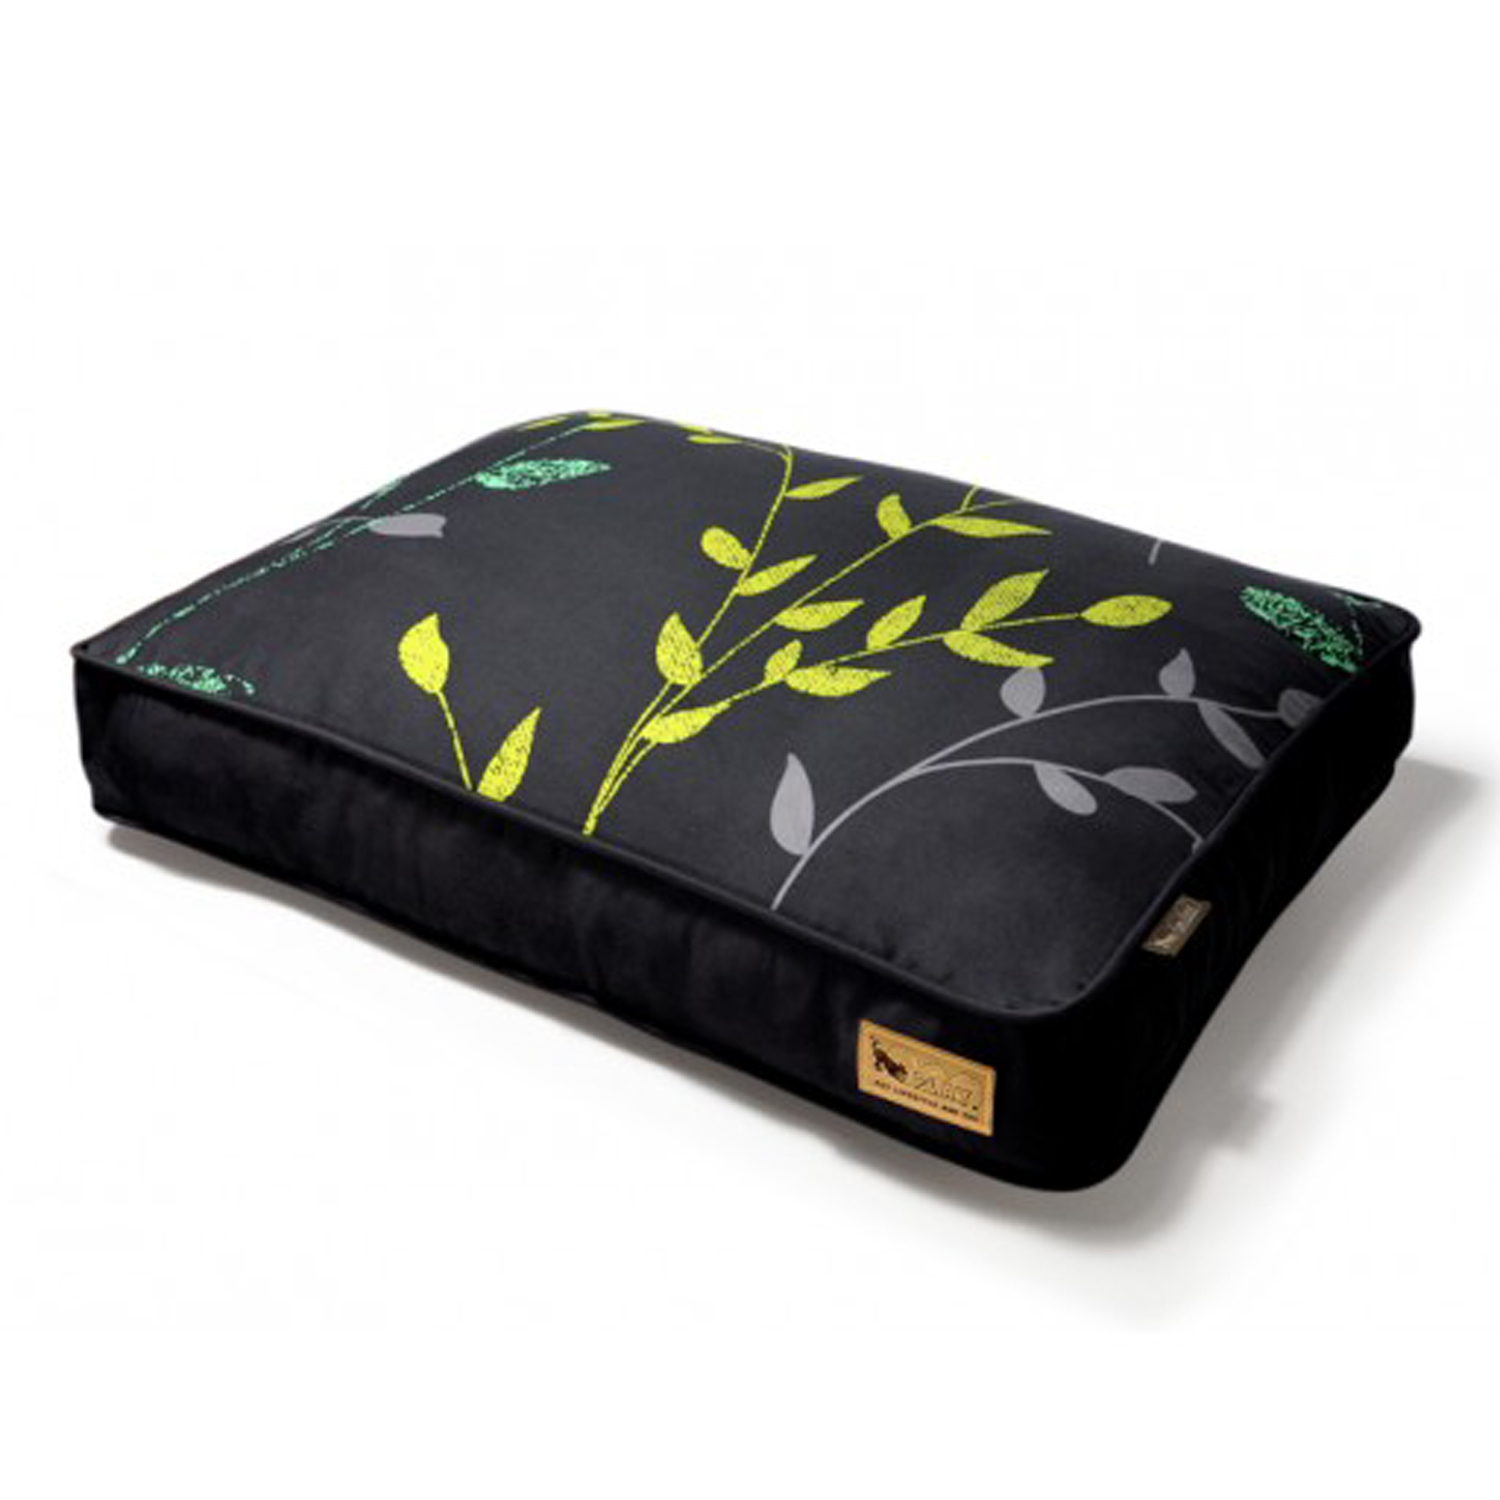 P.L.A.Y. Greenery Rectangular Dog Bed Replacement Cover - Slate and Dark Gray